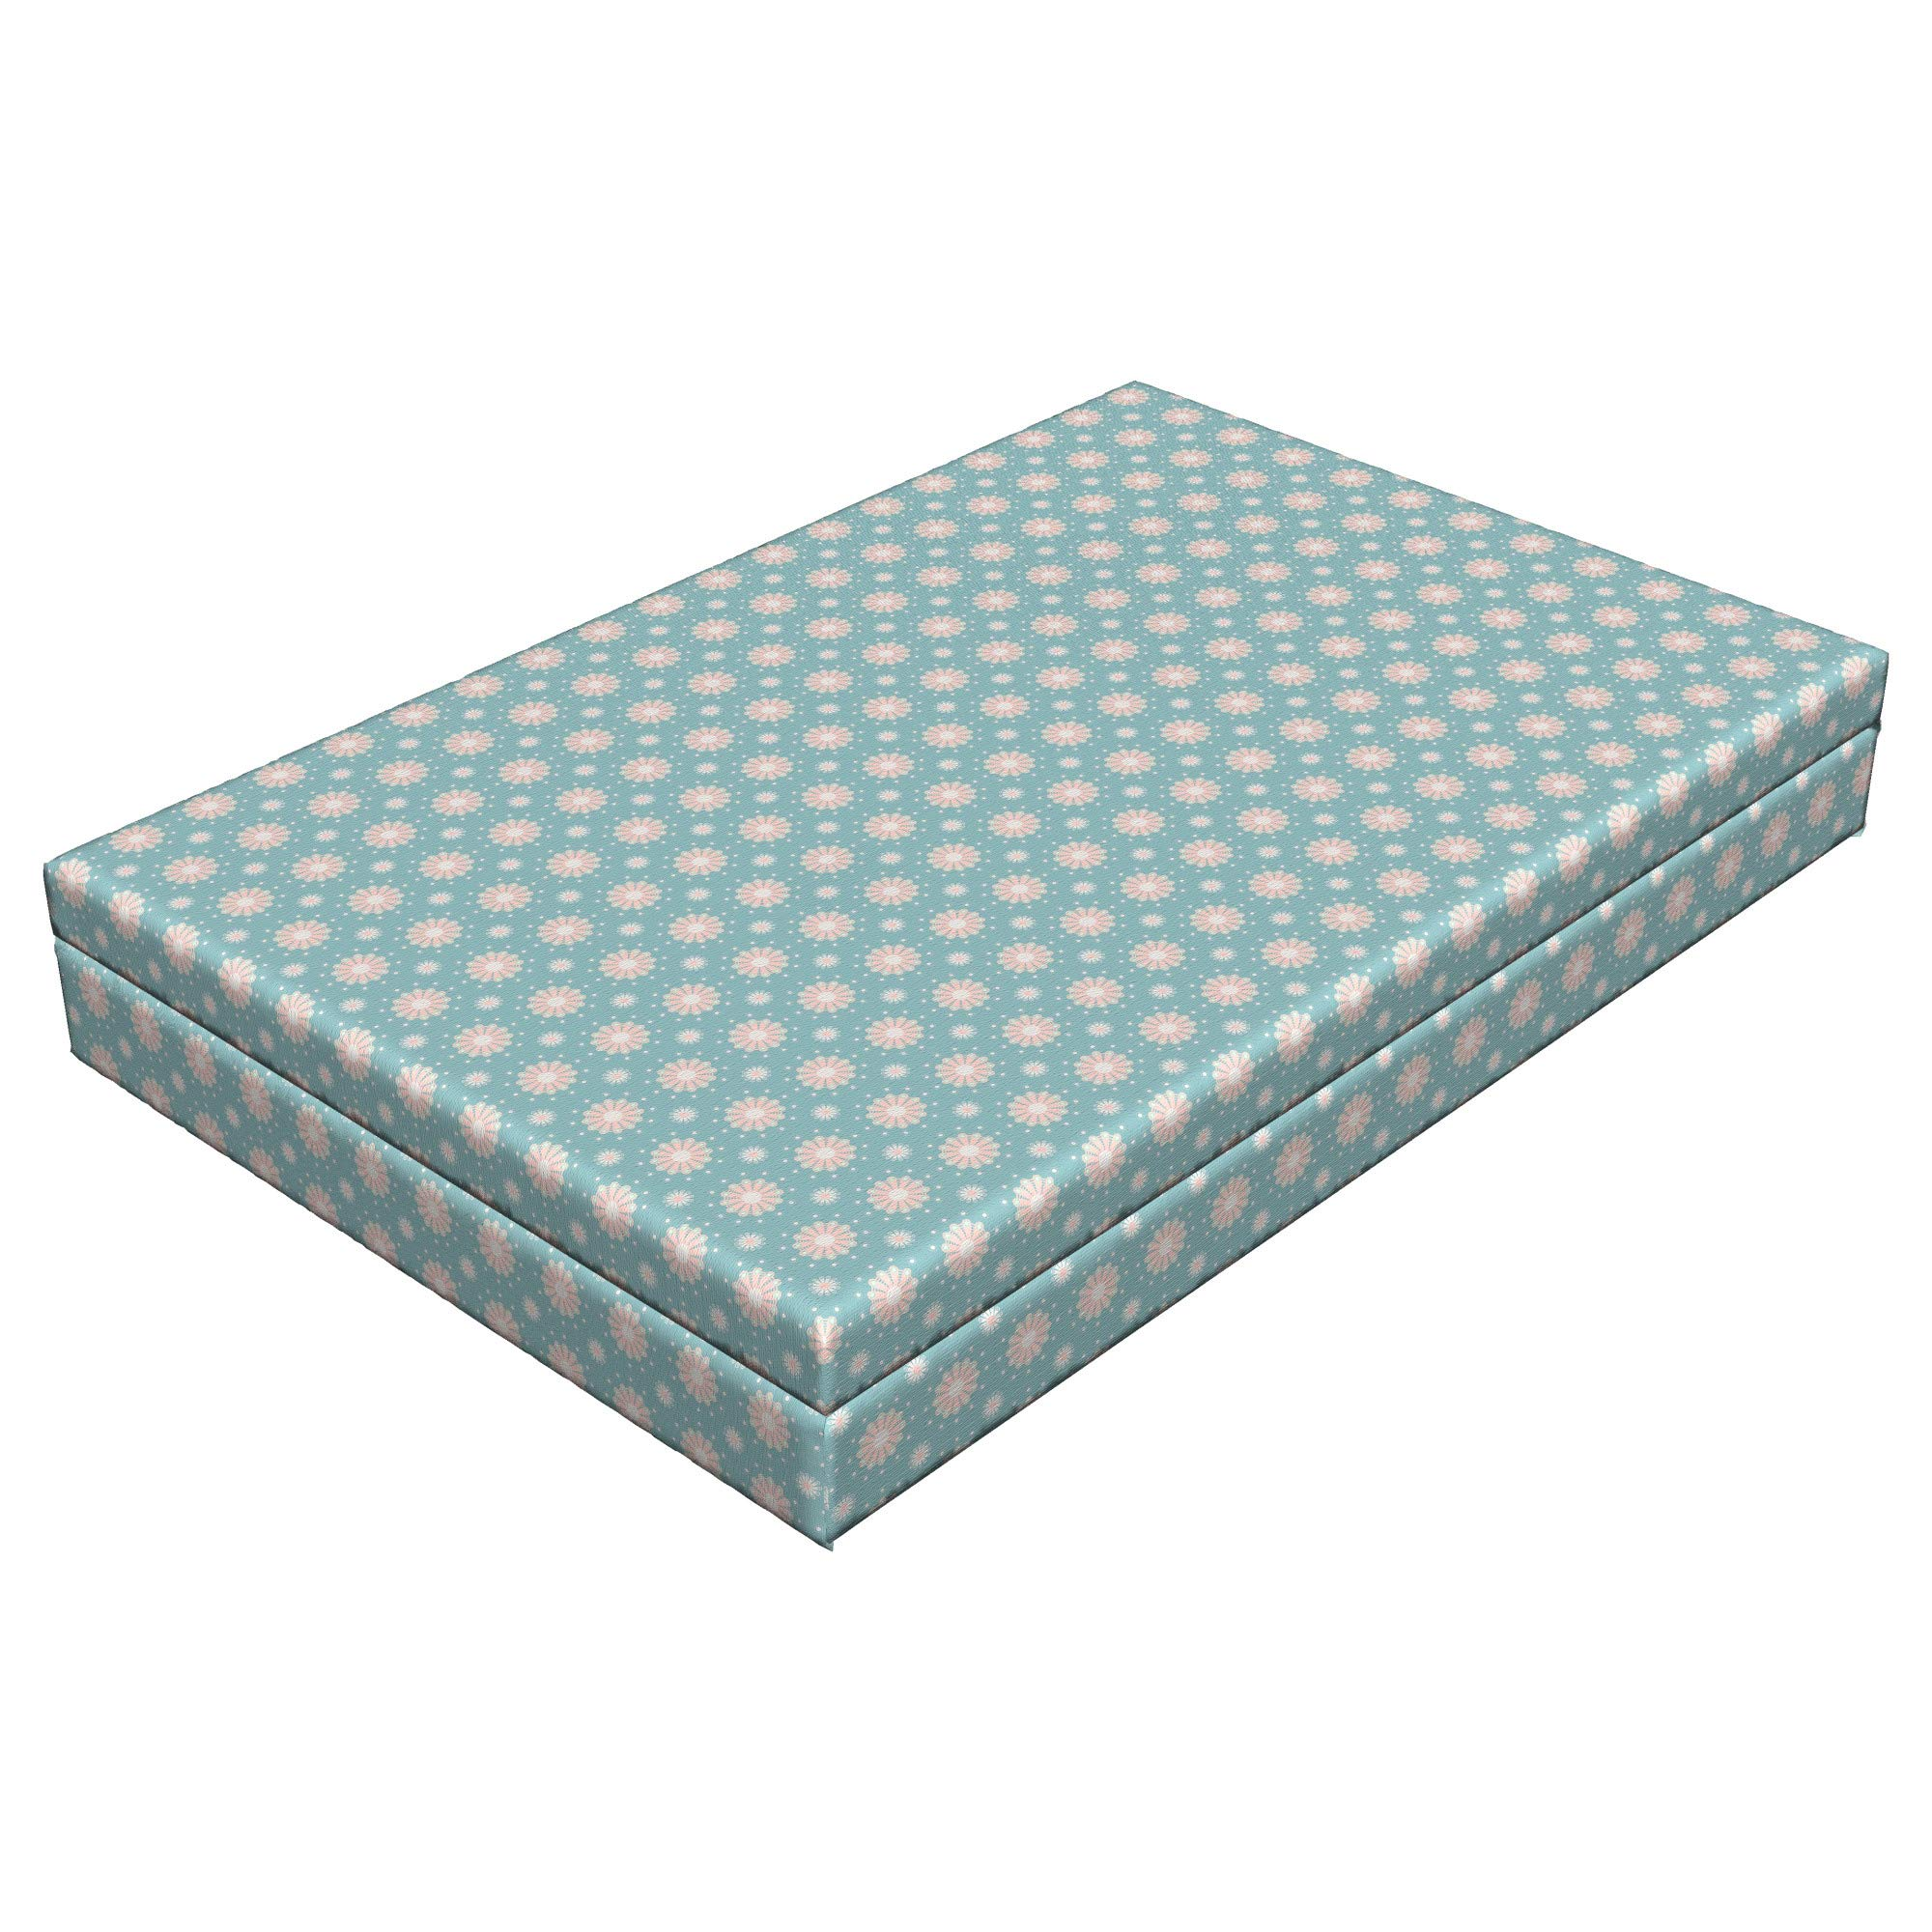 Lunarable Floral Dog Bed, Retro Style Symmetrical Pattern with Flower Motifs Pastel Colored Romantic Spring, Durable Washable Mat with Decorative Fabric Cover, 48'' x 32'' x 6'', Teal Coral